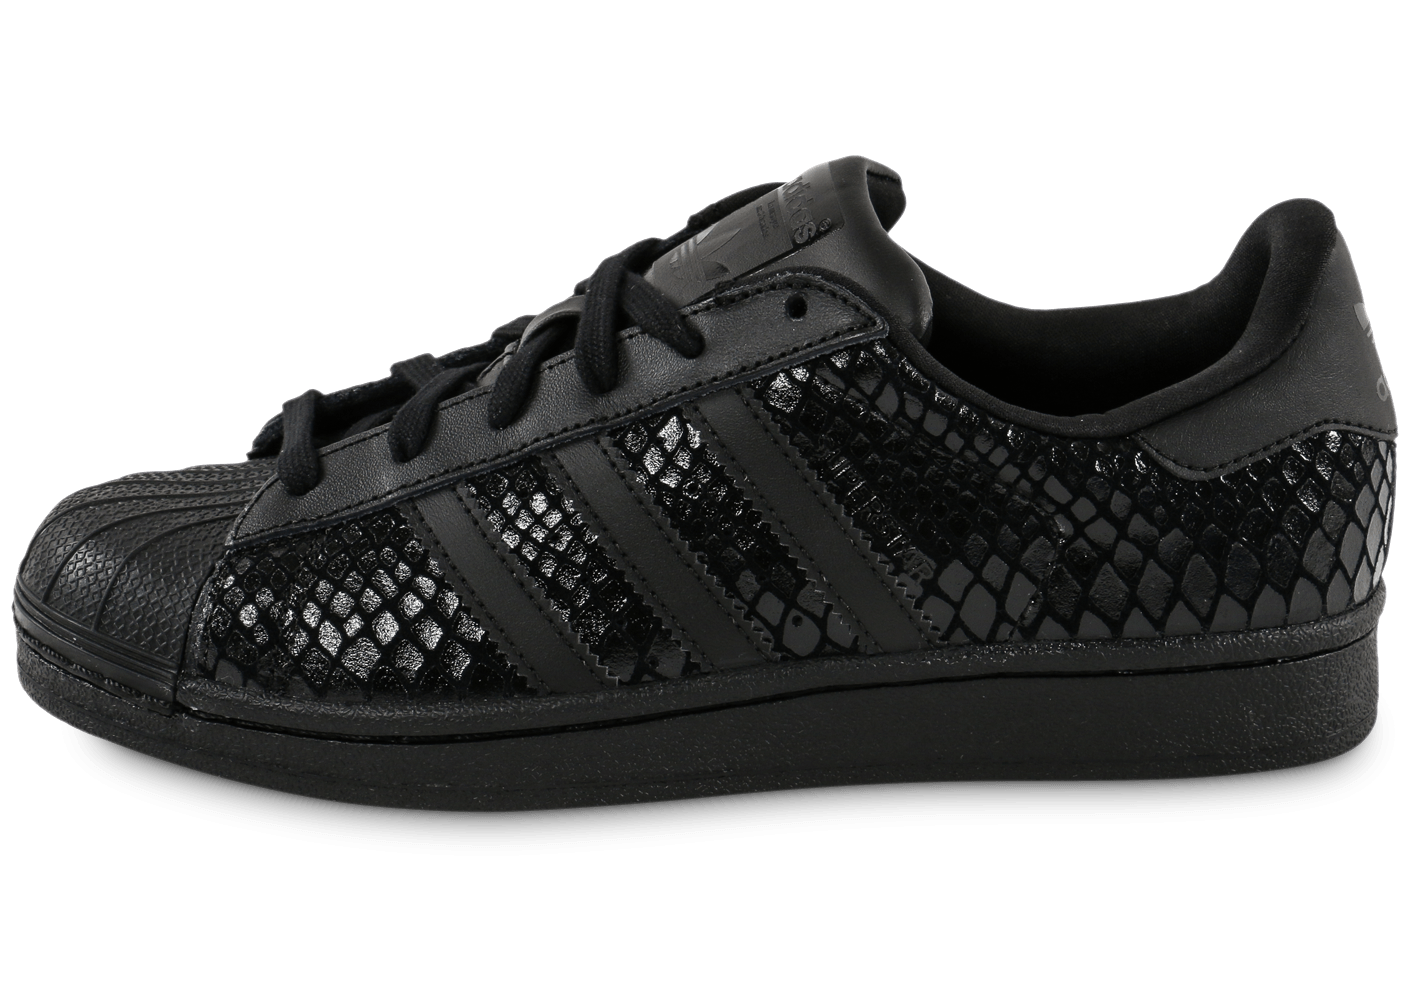 adidas superstar snake triple noire chaussures adidas chausport. Black Bedroom Furniture Sets. Home Design Ideas